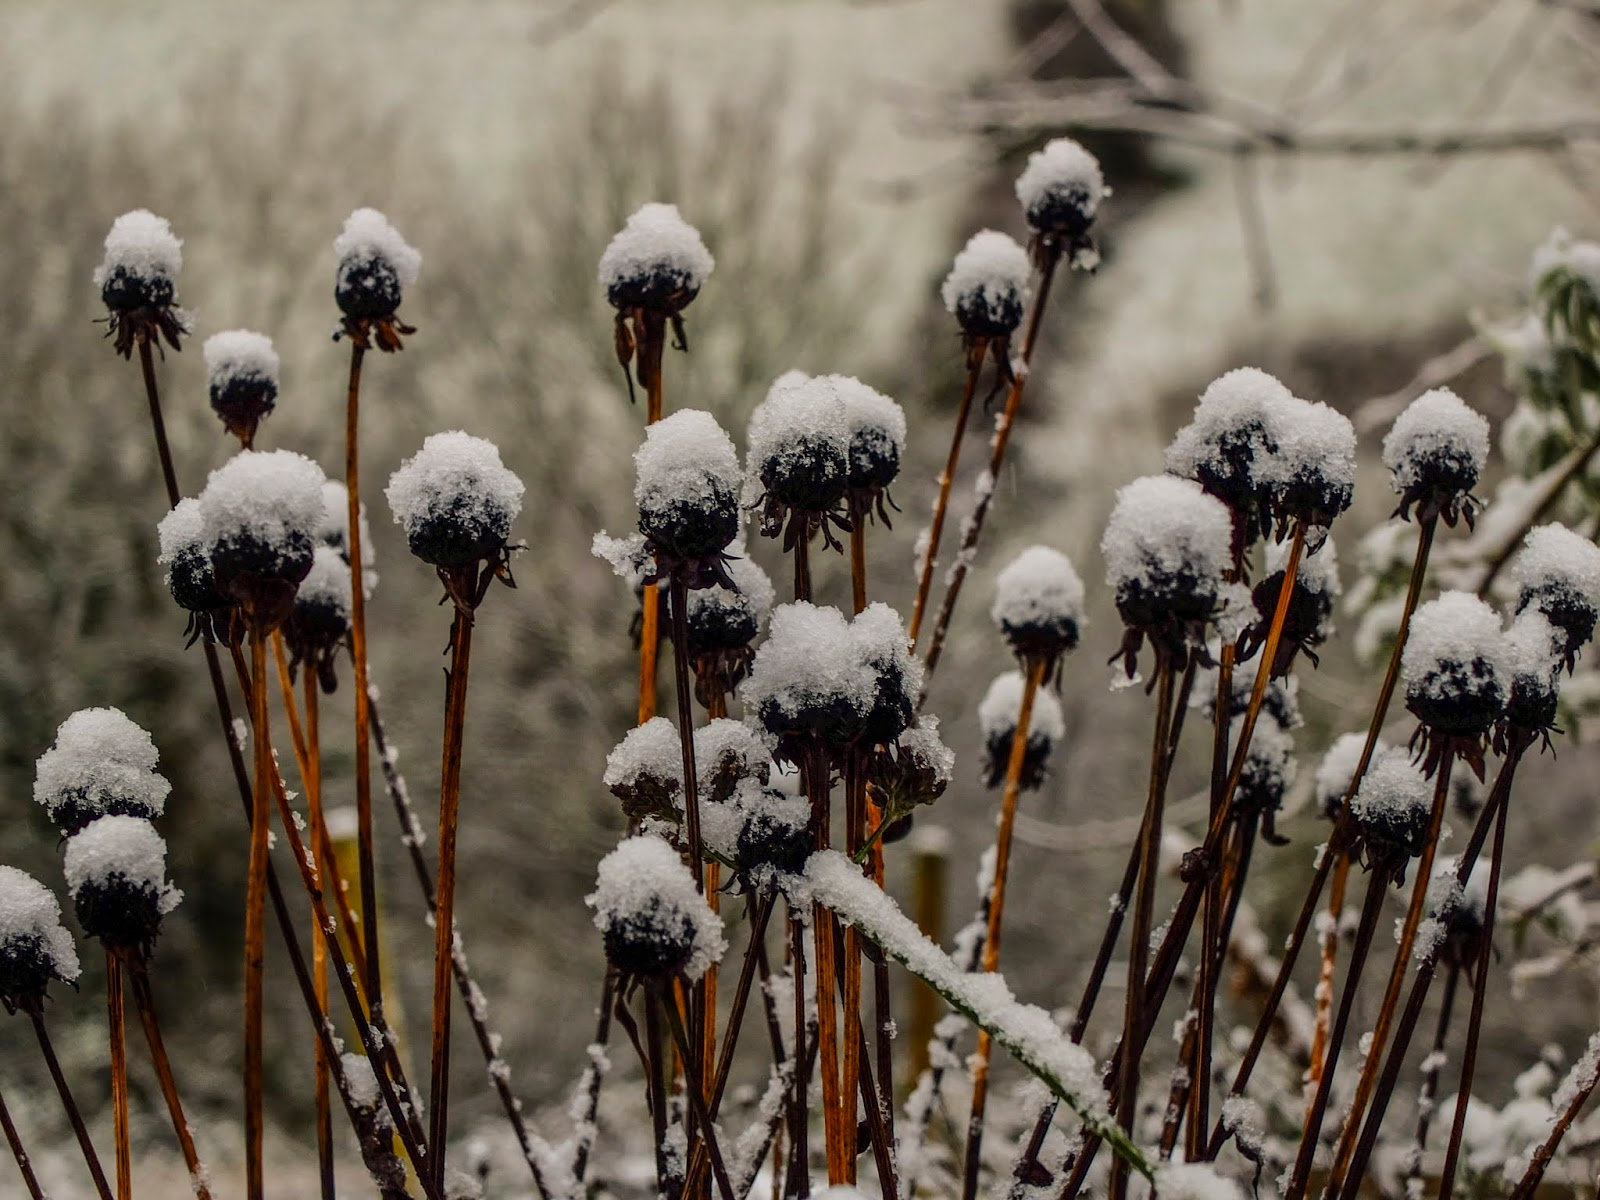 A close up of snow capped flower heads.